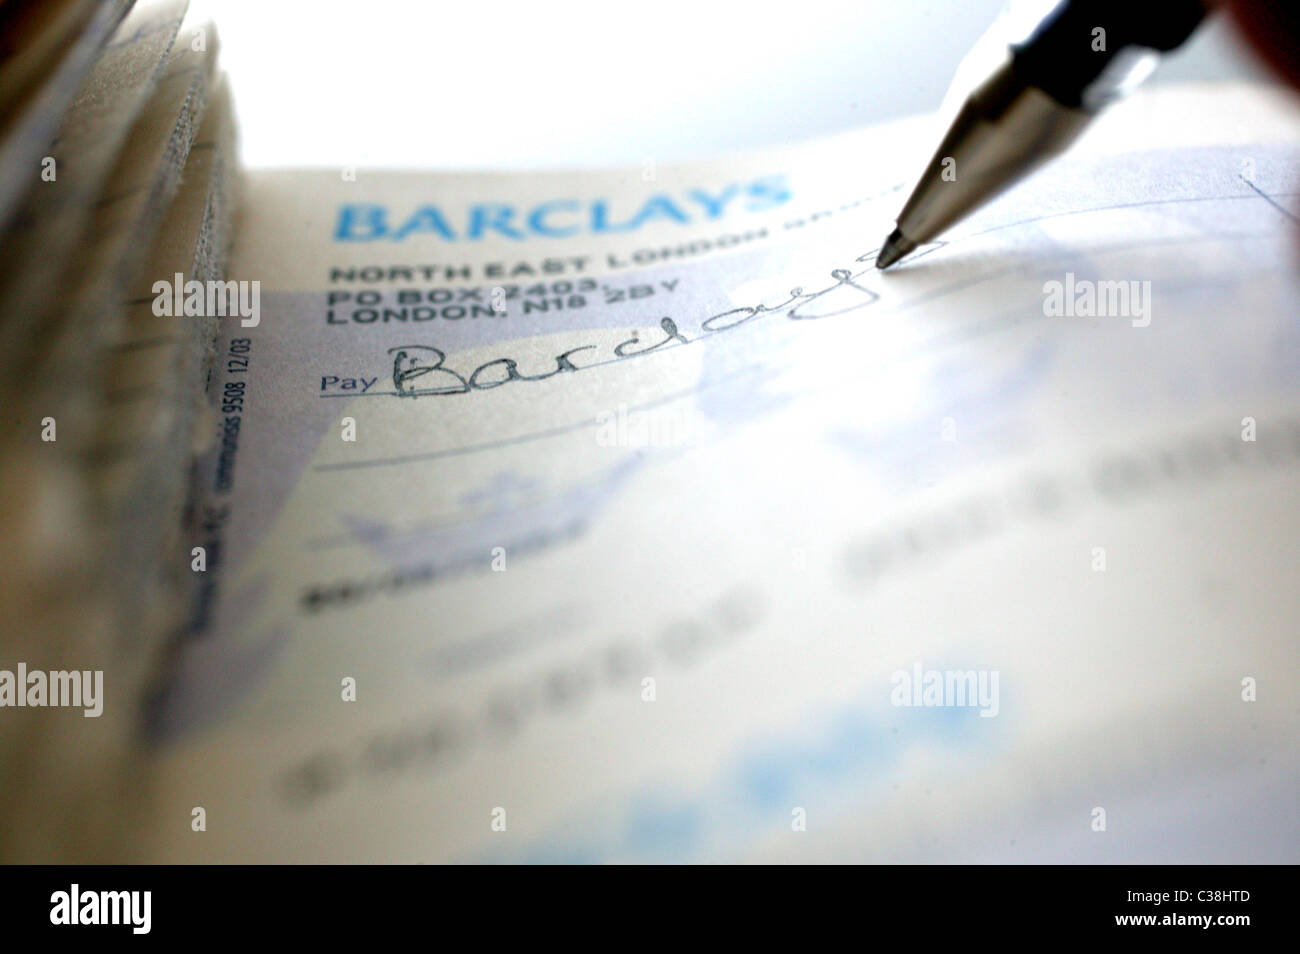 Lloyds Tsb How To Fill Out A Cheque Illustrative Image Of A Barclays Bank  Cheque Book Stock Image